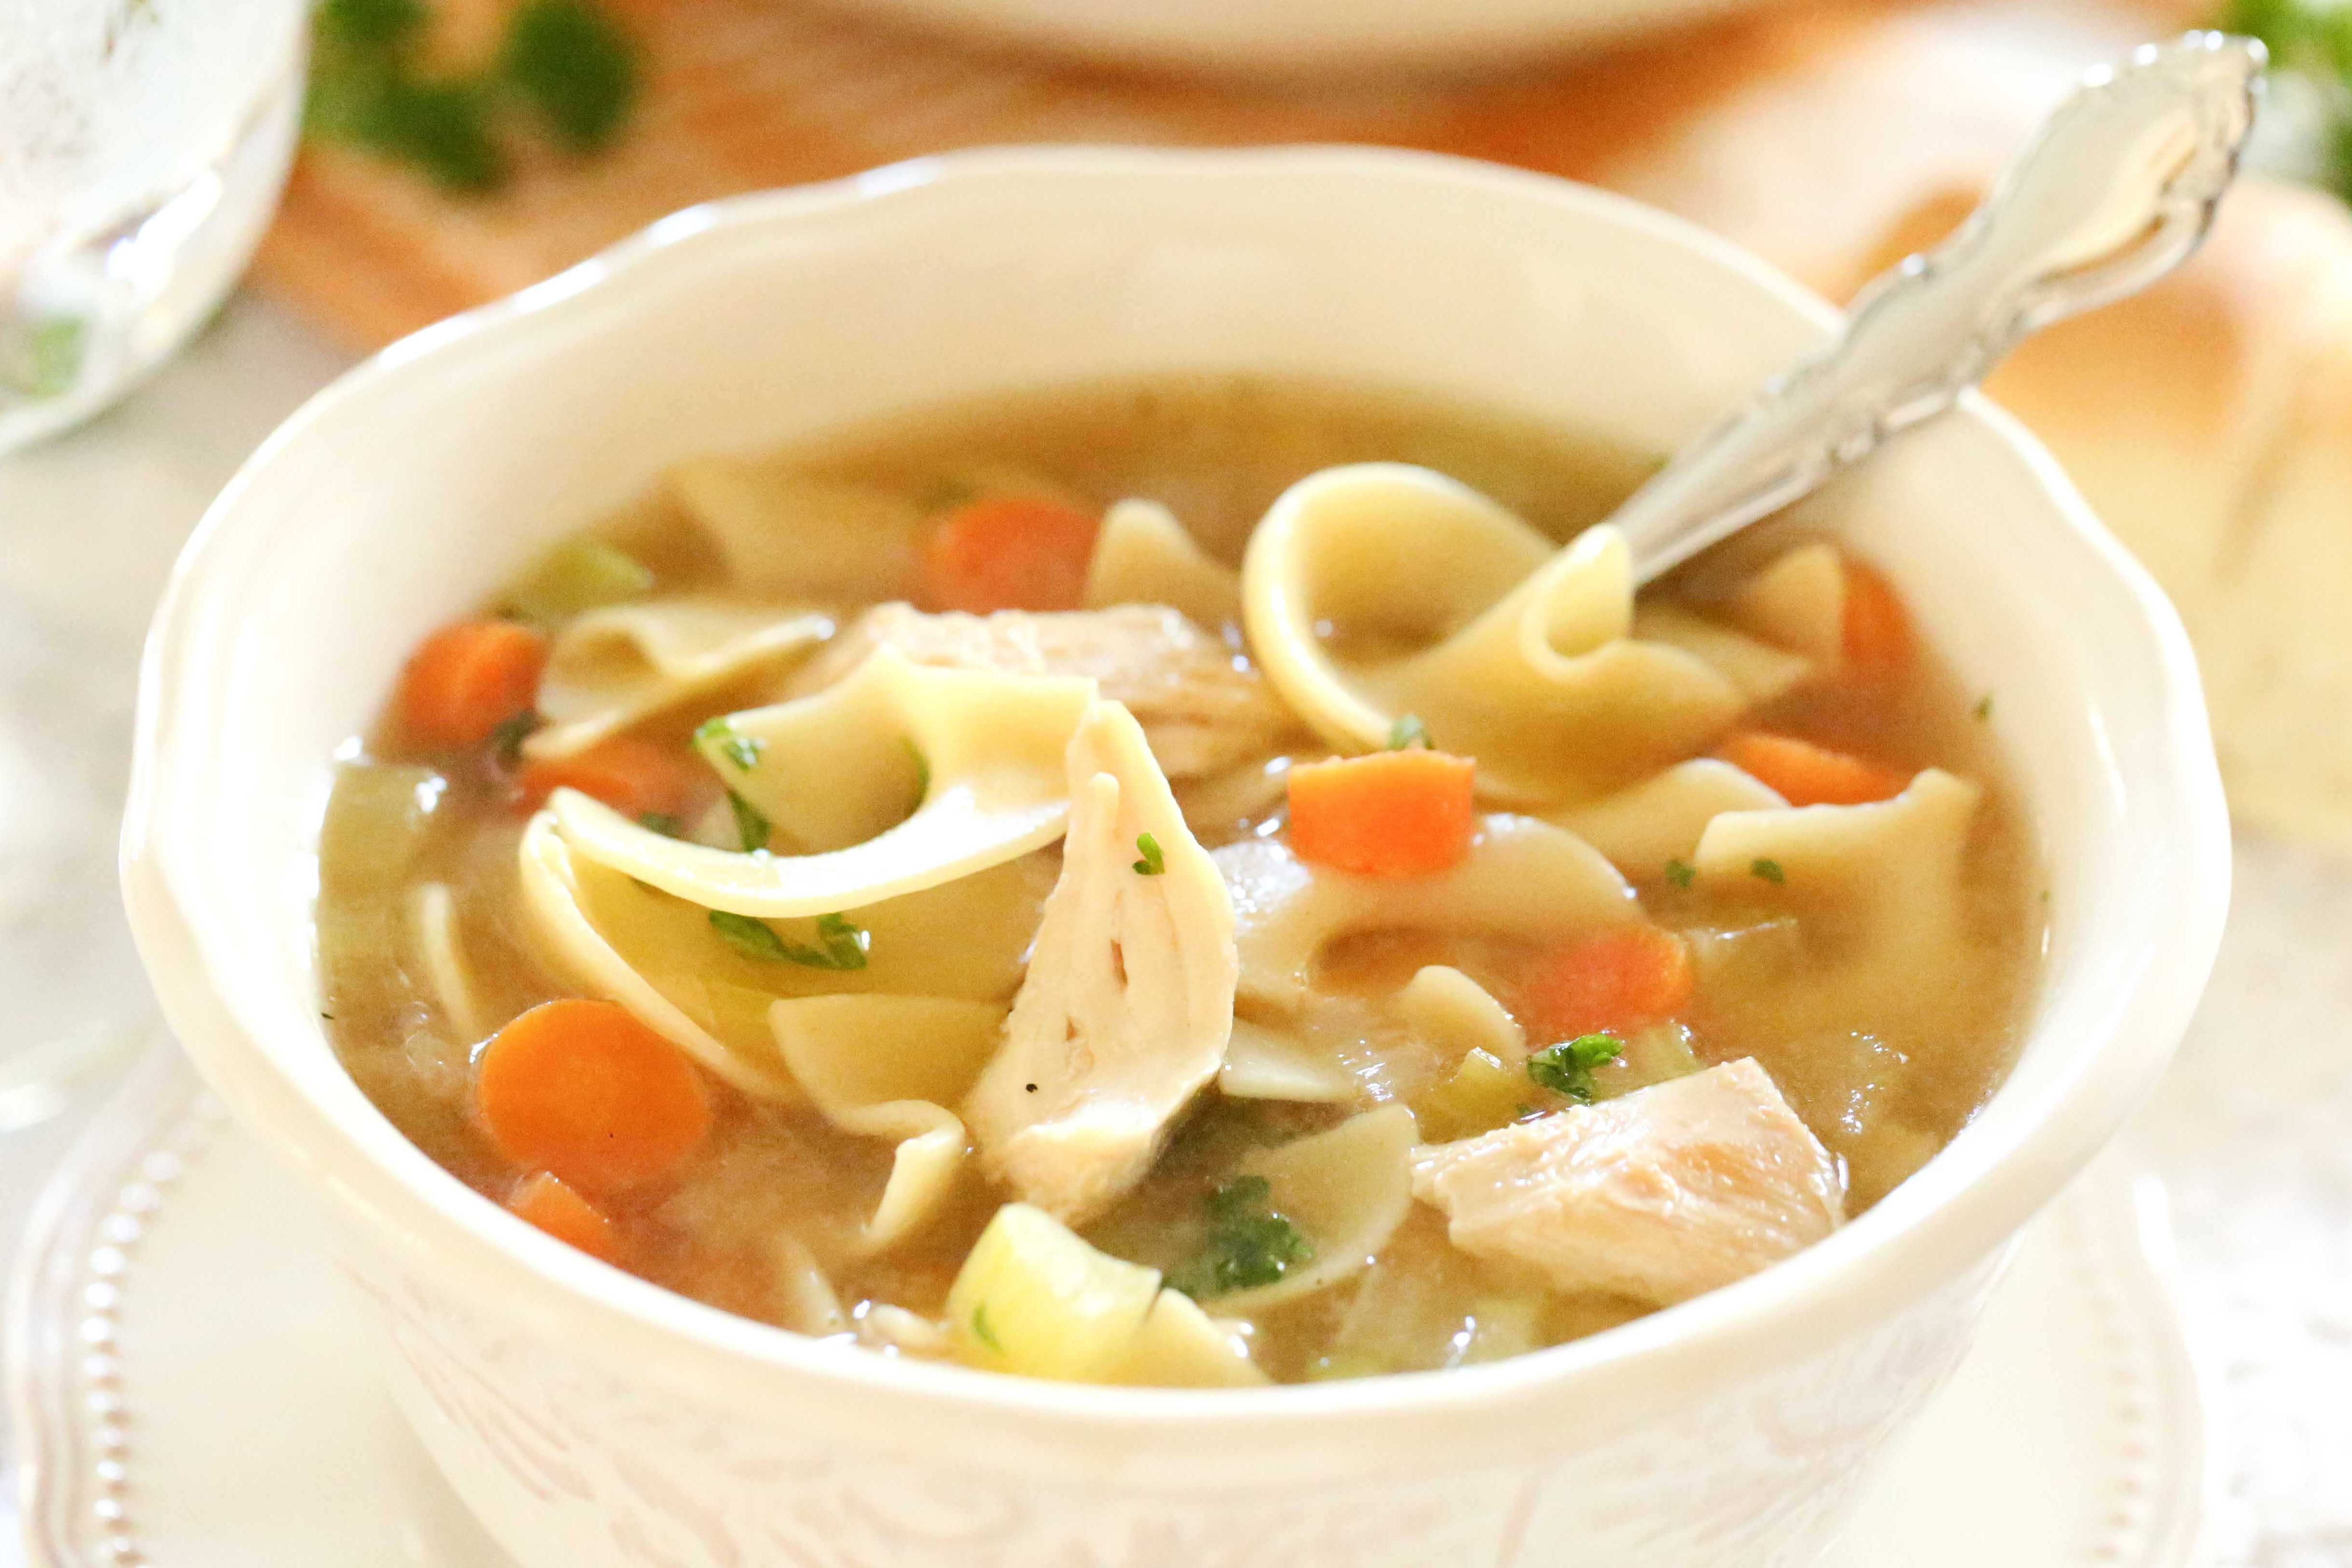 Soothing Chicken Noodle Soup